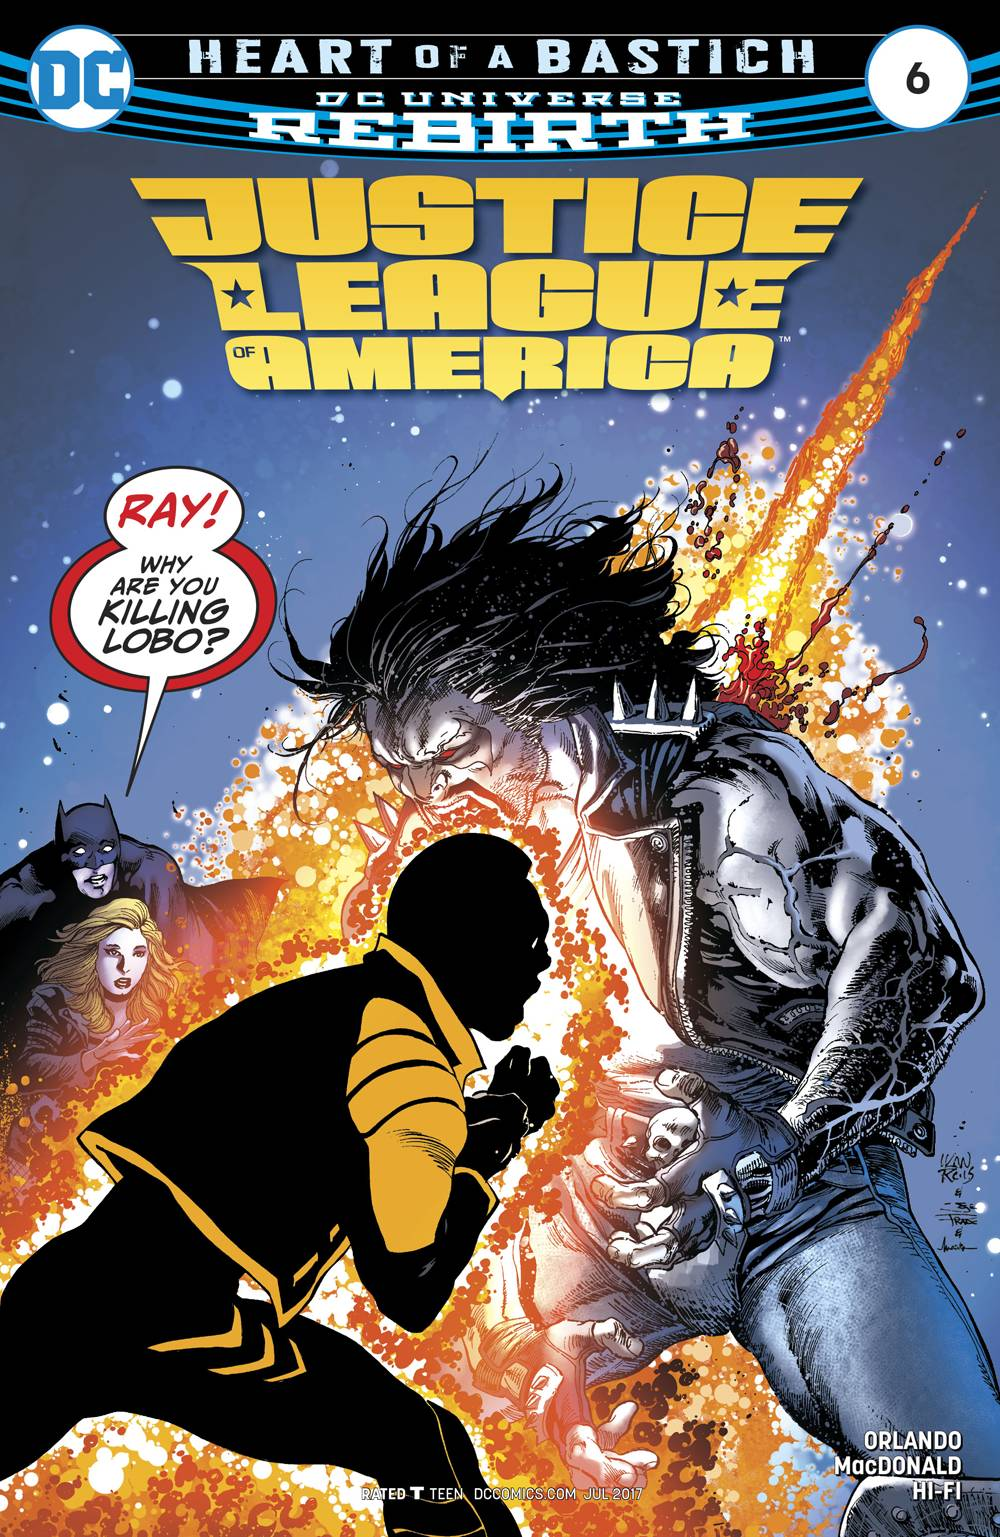 Justice League of America, Vol. 5 #6